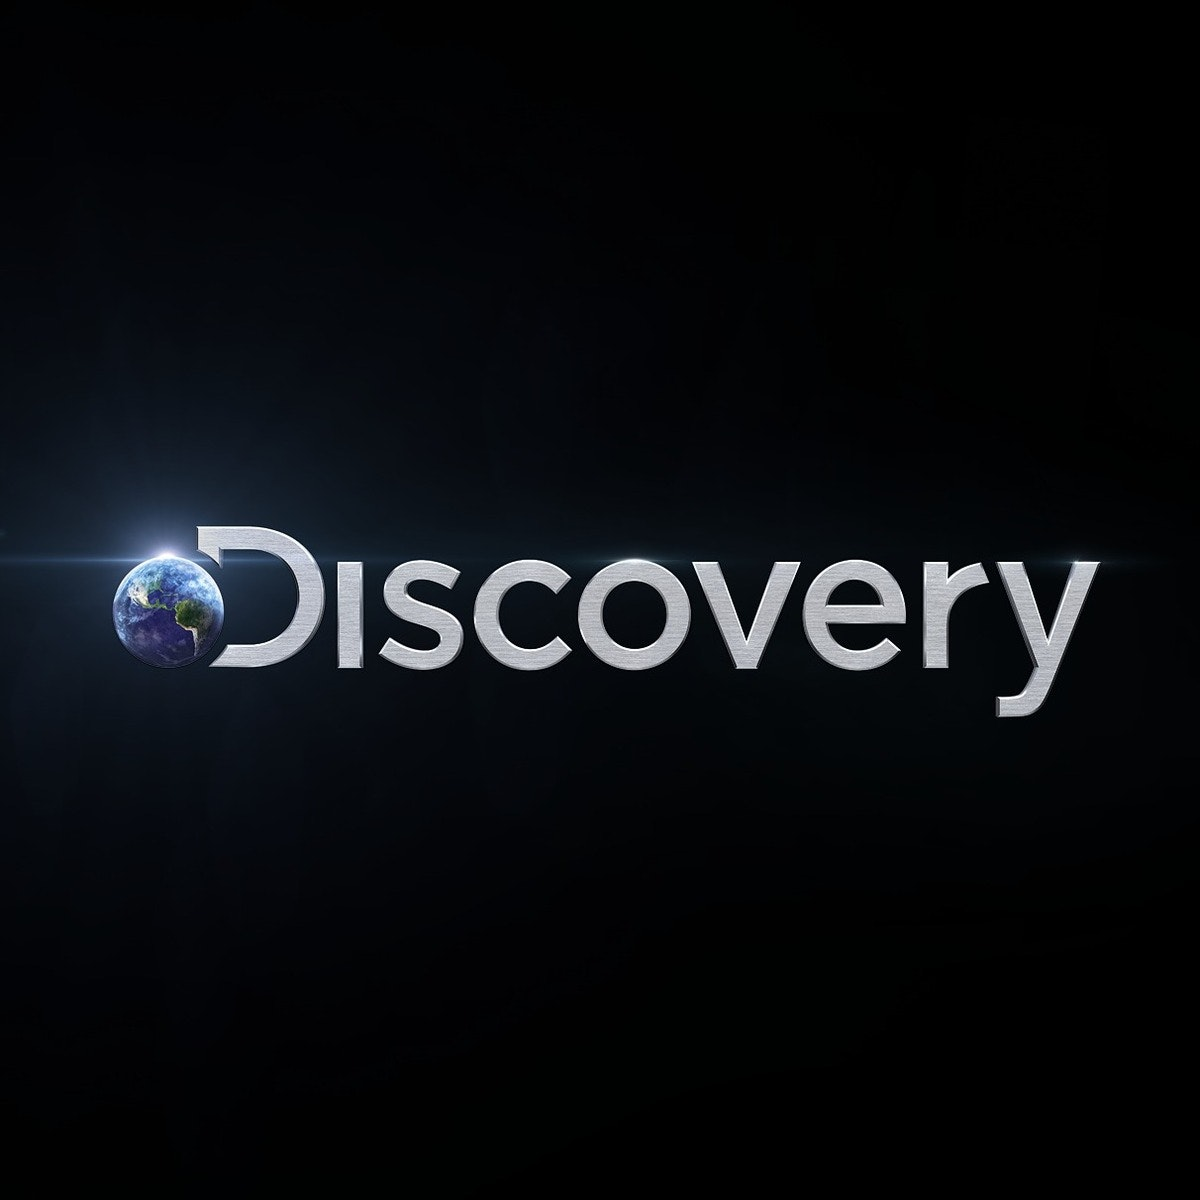 Discovery Communications Deutschland GmbH & Co. KG